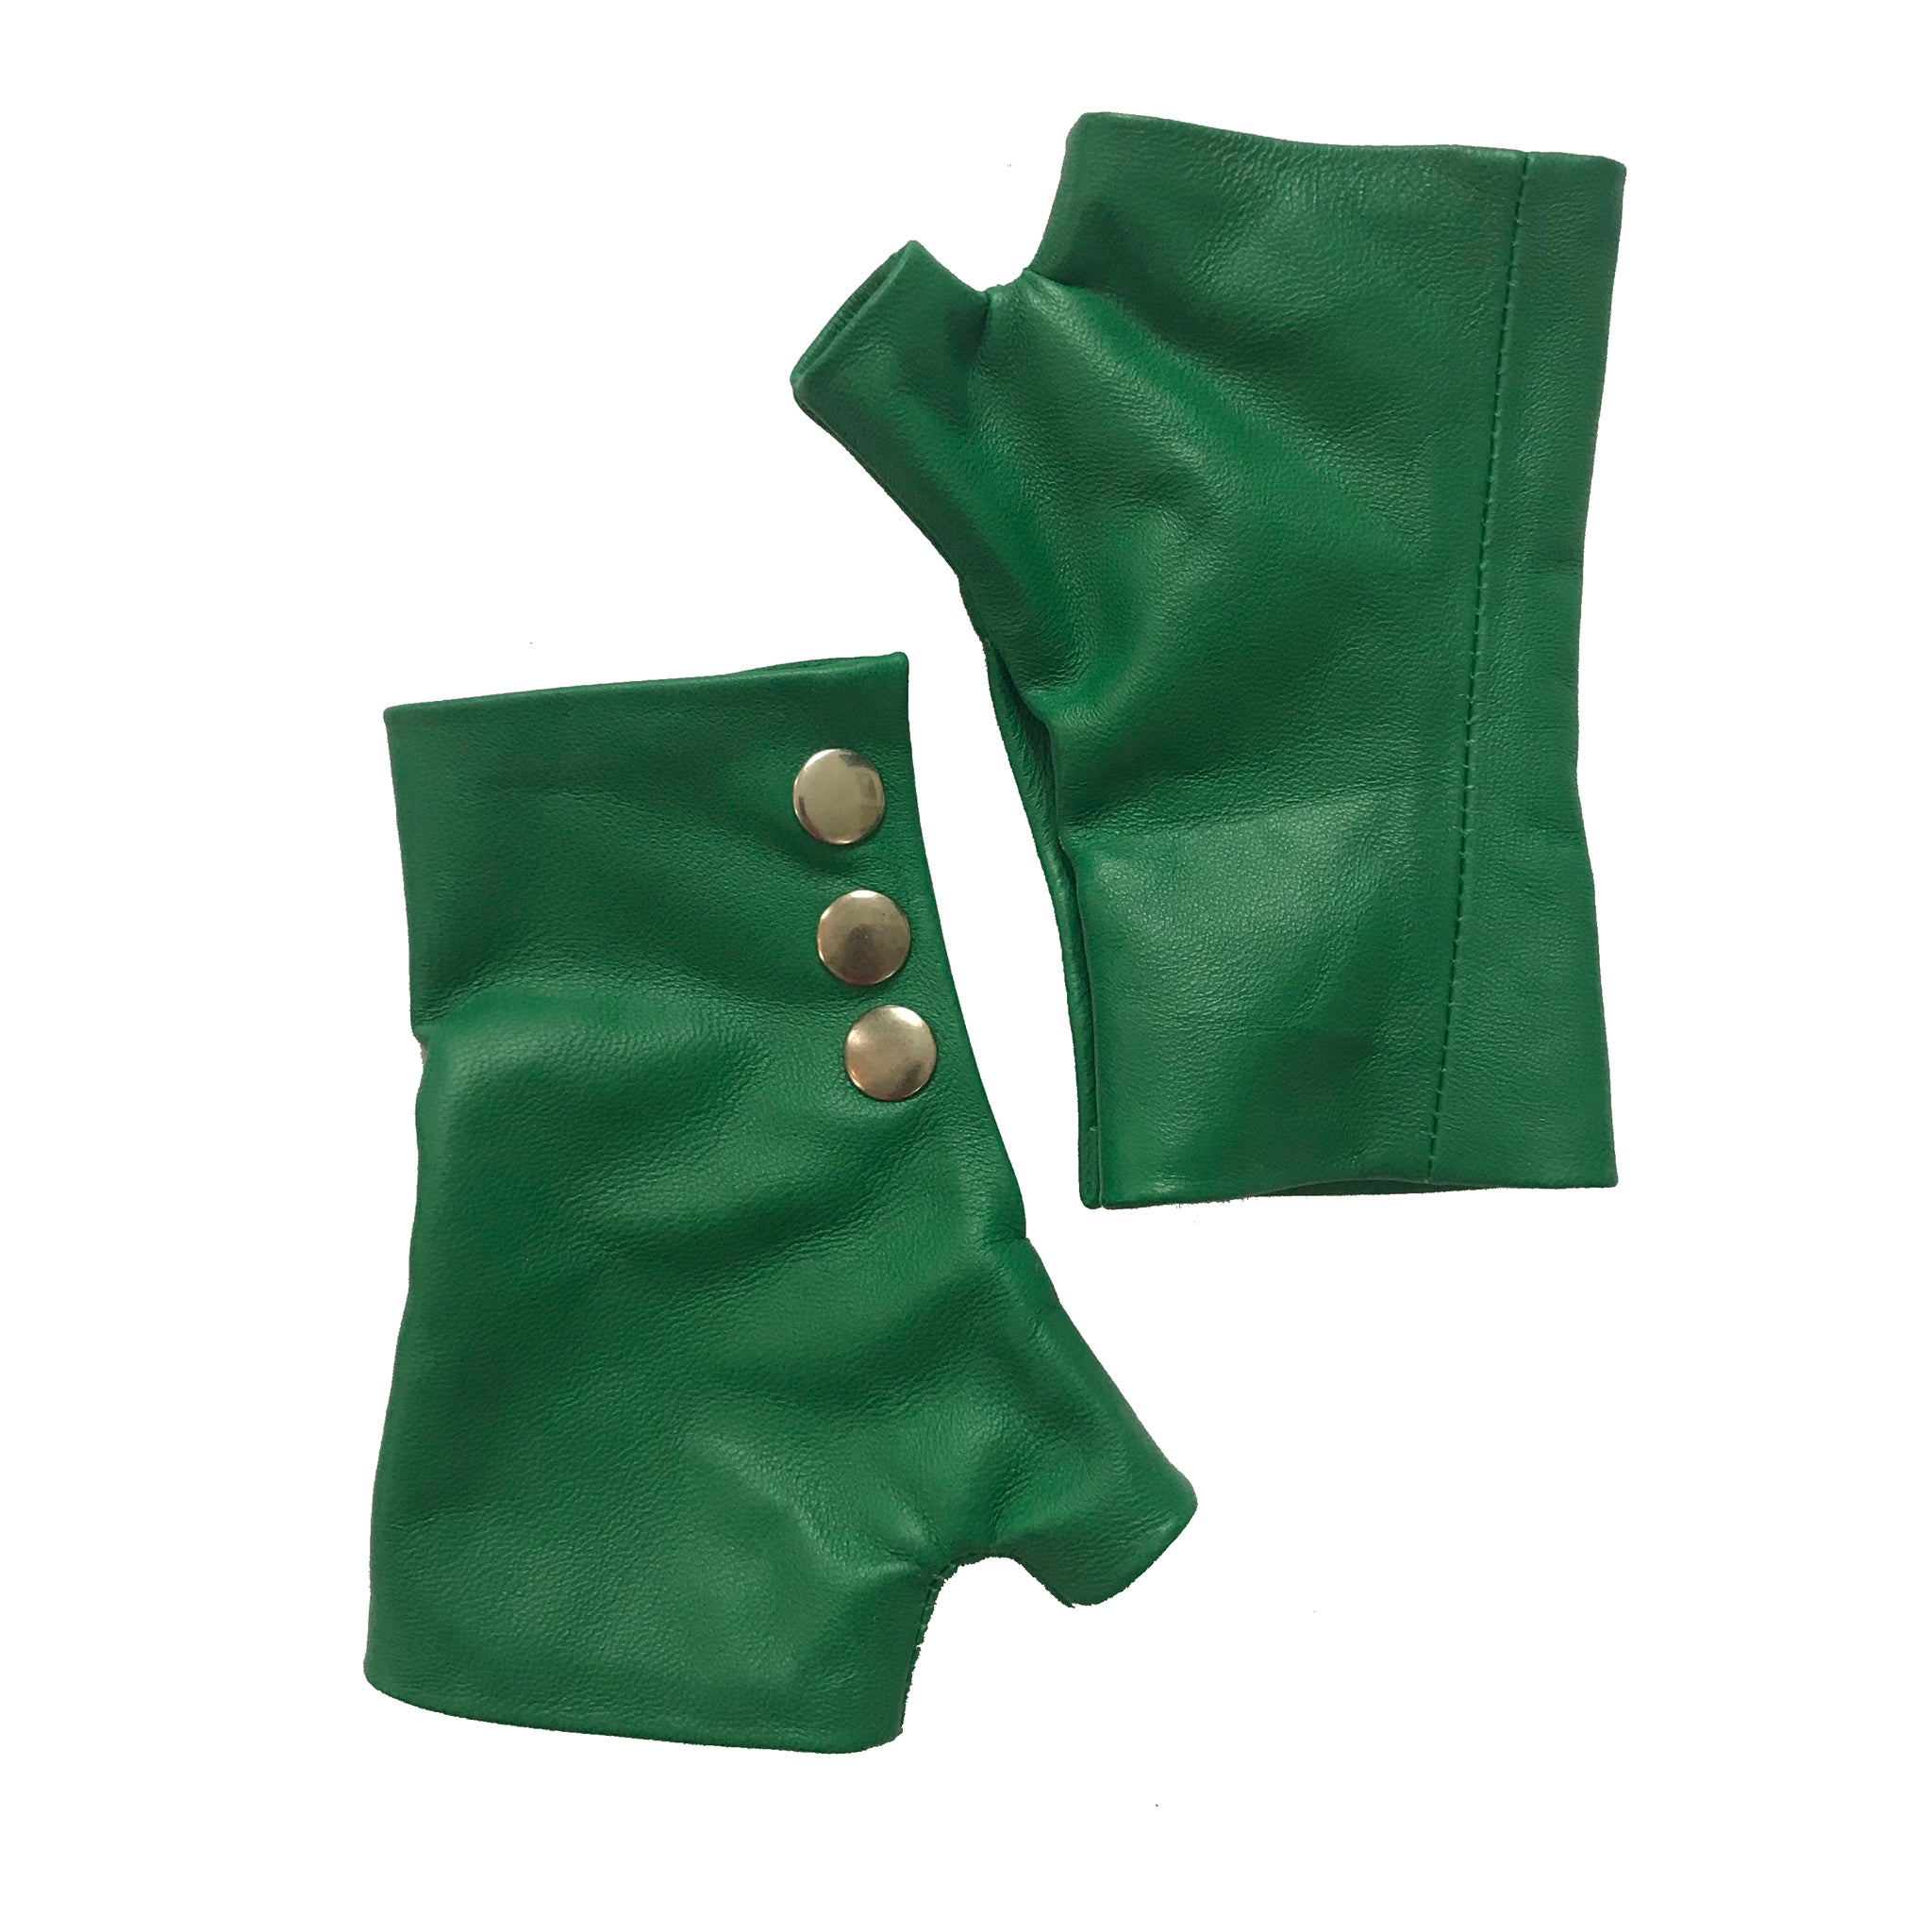 Vibrant Green Leather Gloves